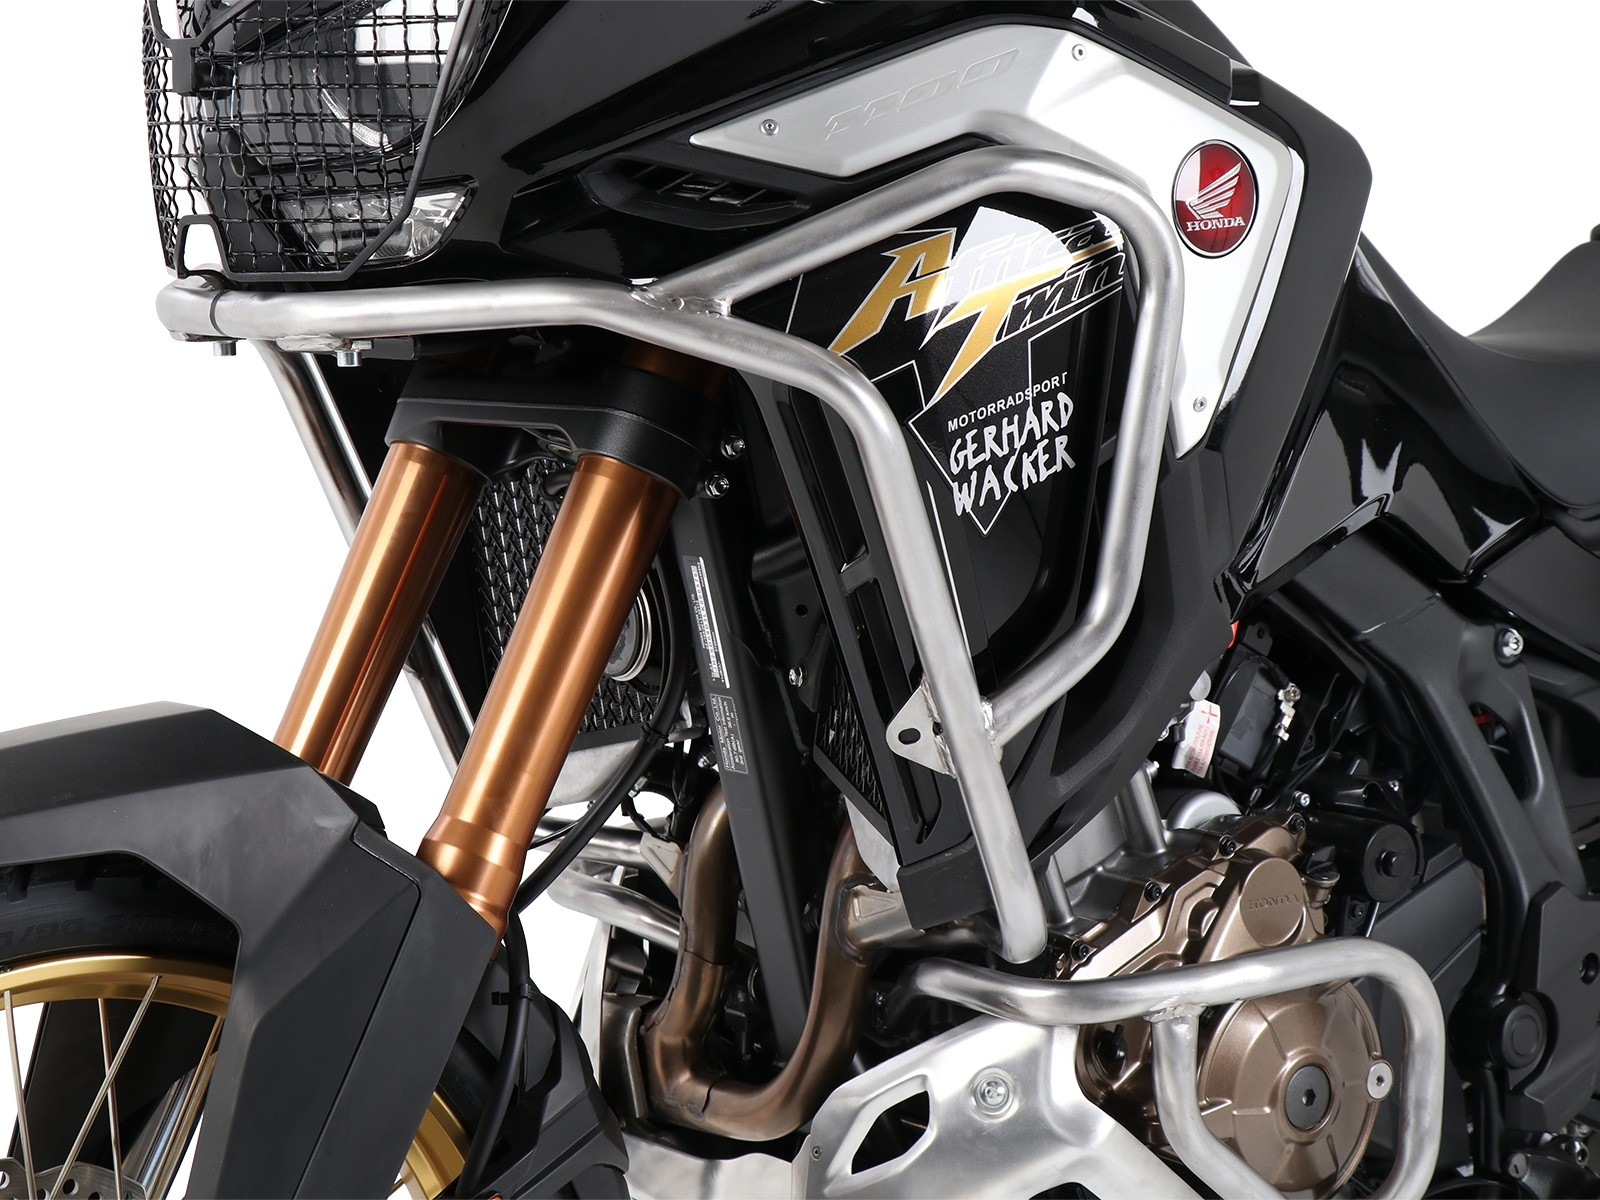 Hepco Upper Engine/Tank Protection Honda CRF 1100 L Africa Twin Adventure Sports-  STAINLESS STEEL 2020